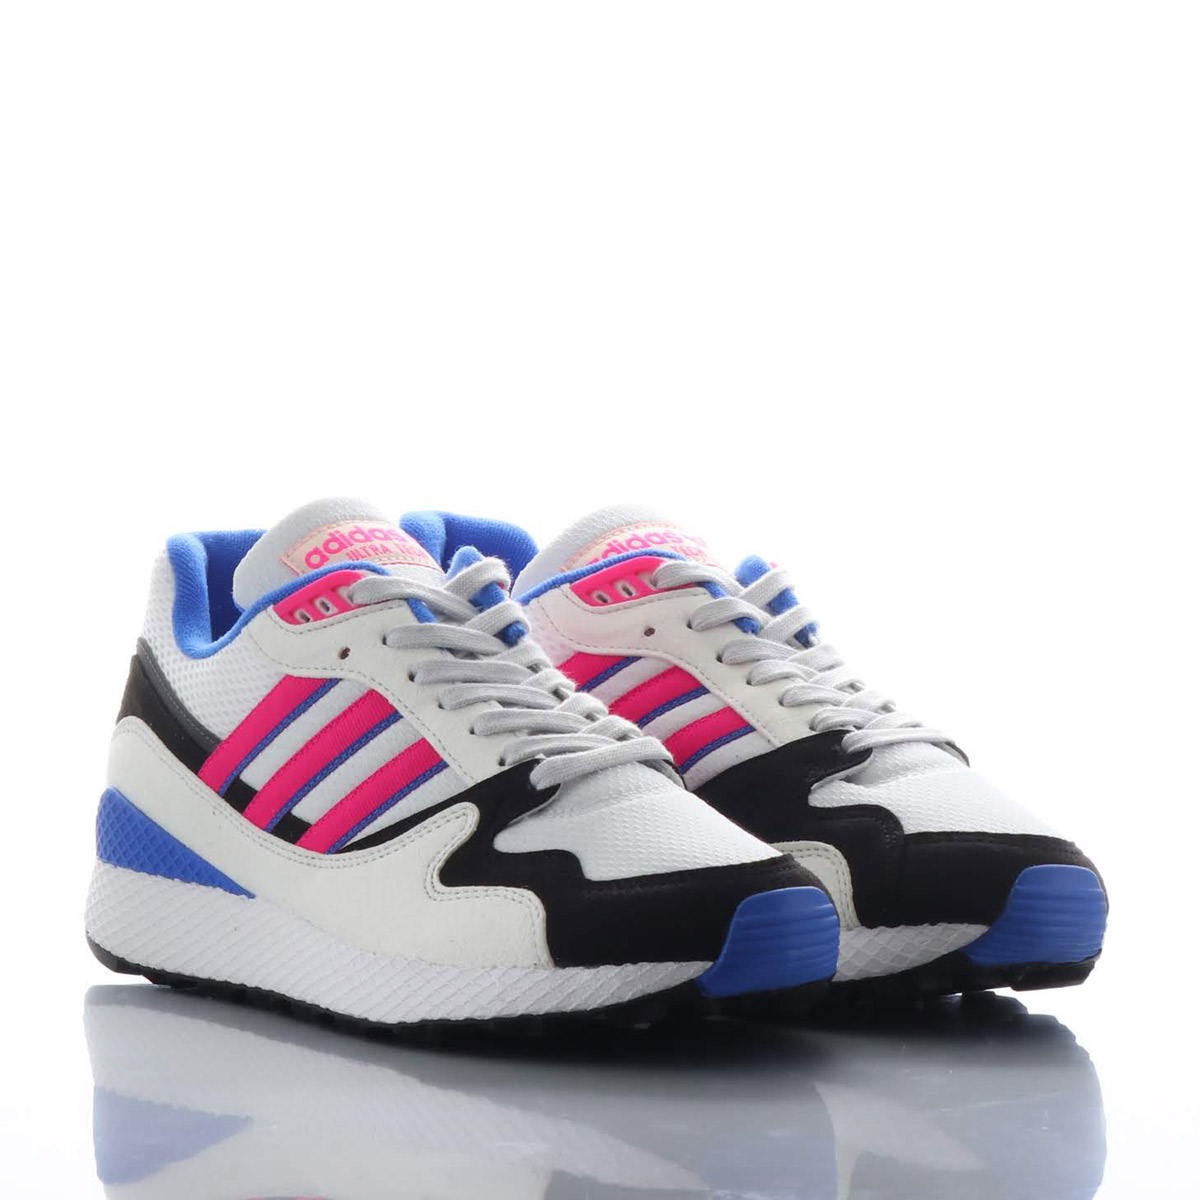 b96b682c536df adidas Originals ULTRA TECH (Adidas ultra technical center) Crystal White Shock  Pink Core Black 18FW-I